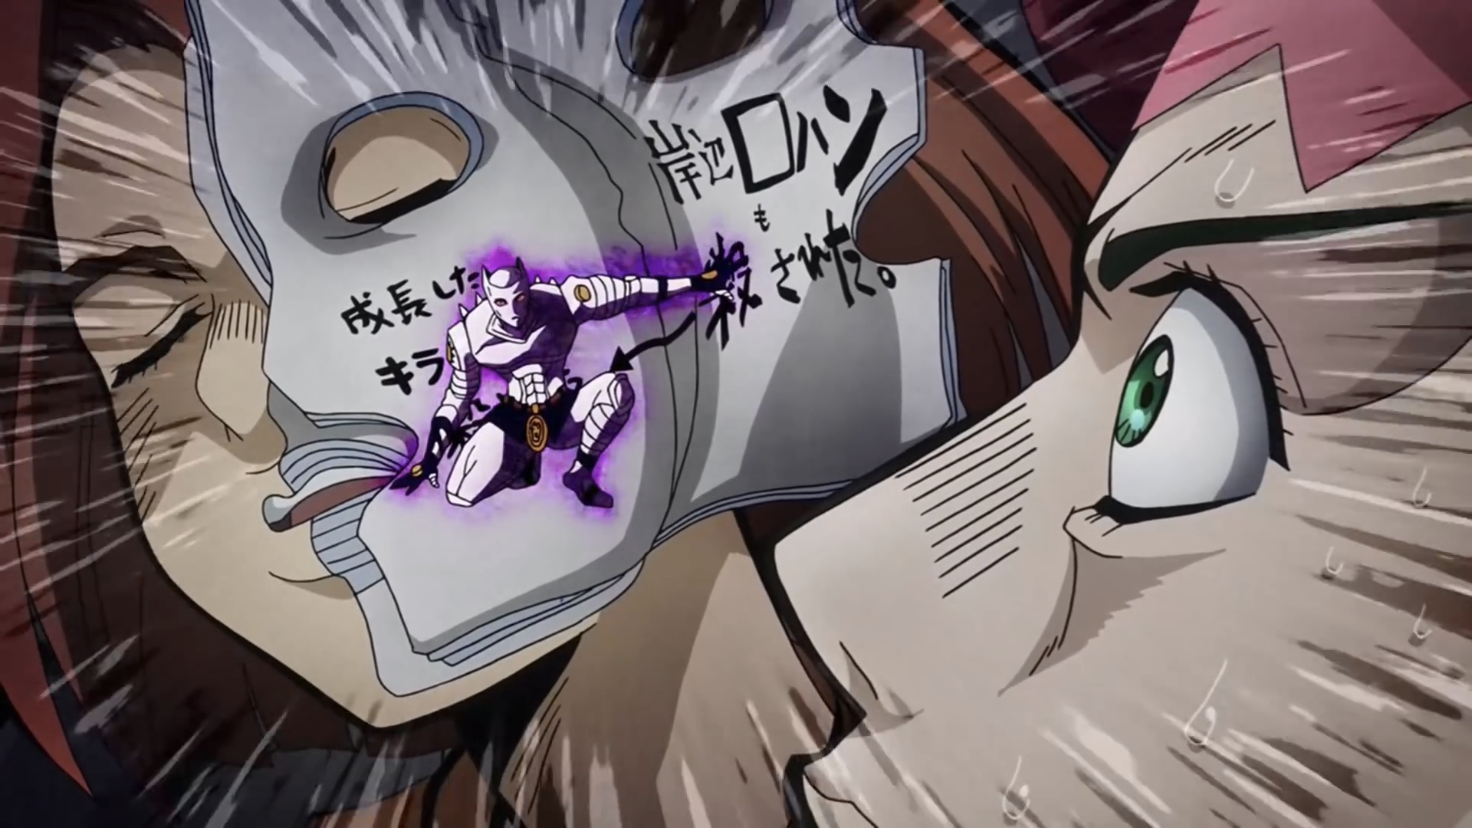 File:Killer queen bites the dust c420.png